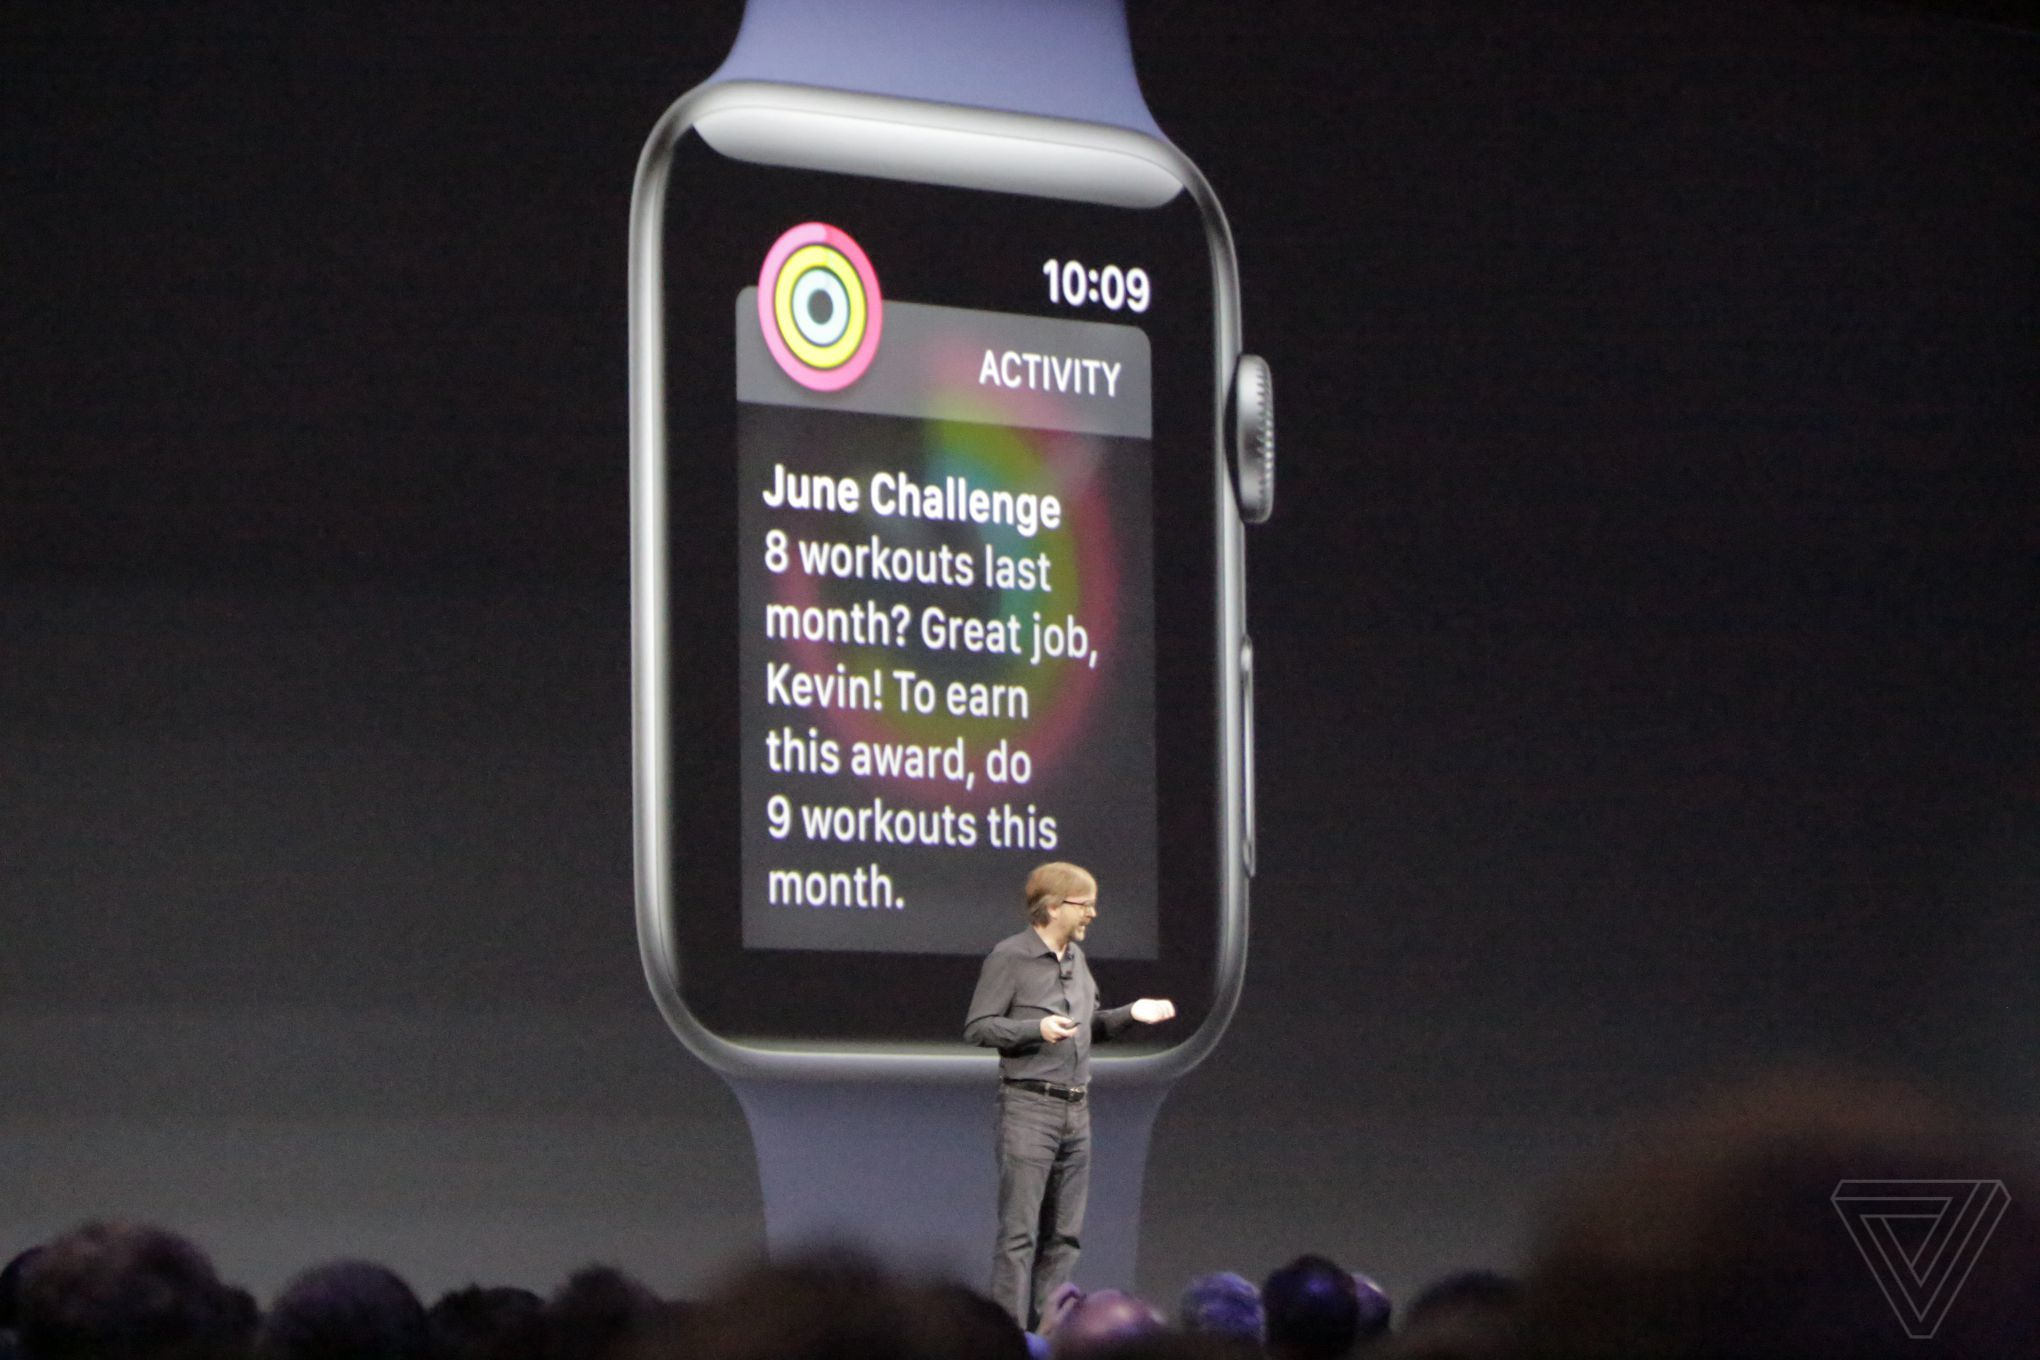 Apple watchOS 4 will bring new watchfaces, including Siri